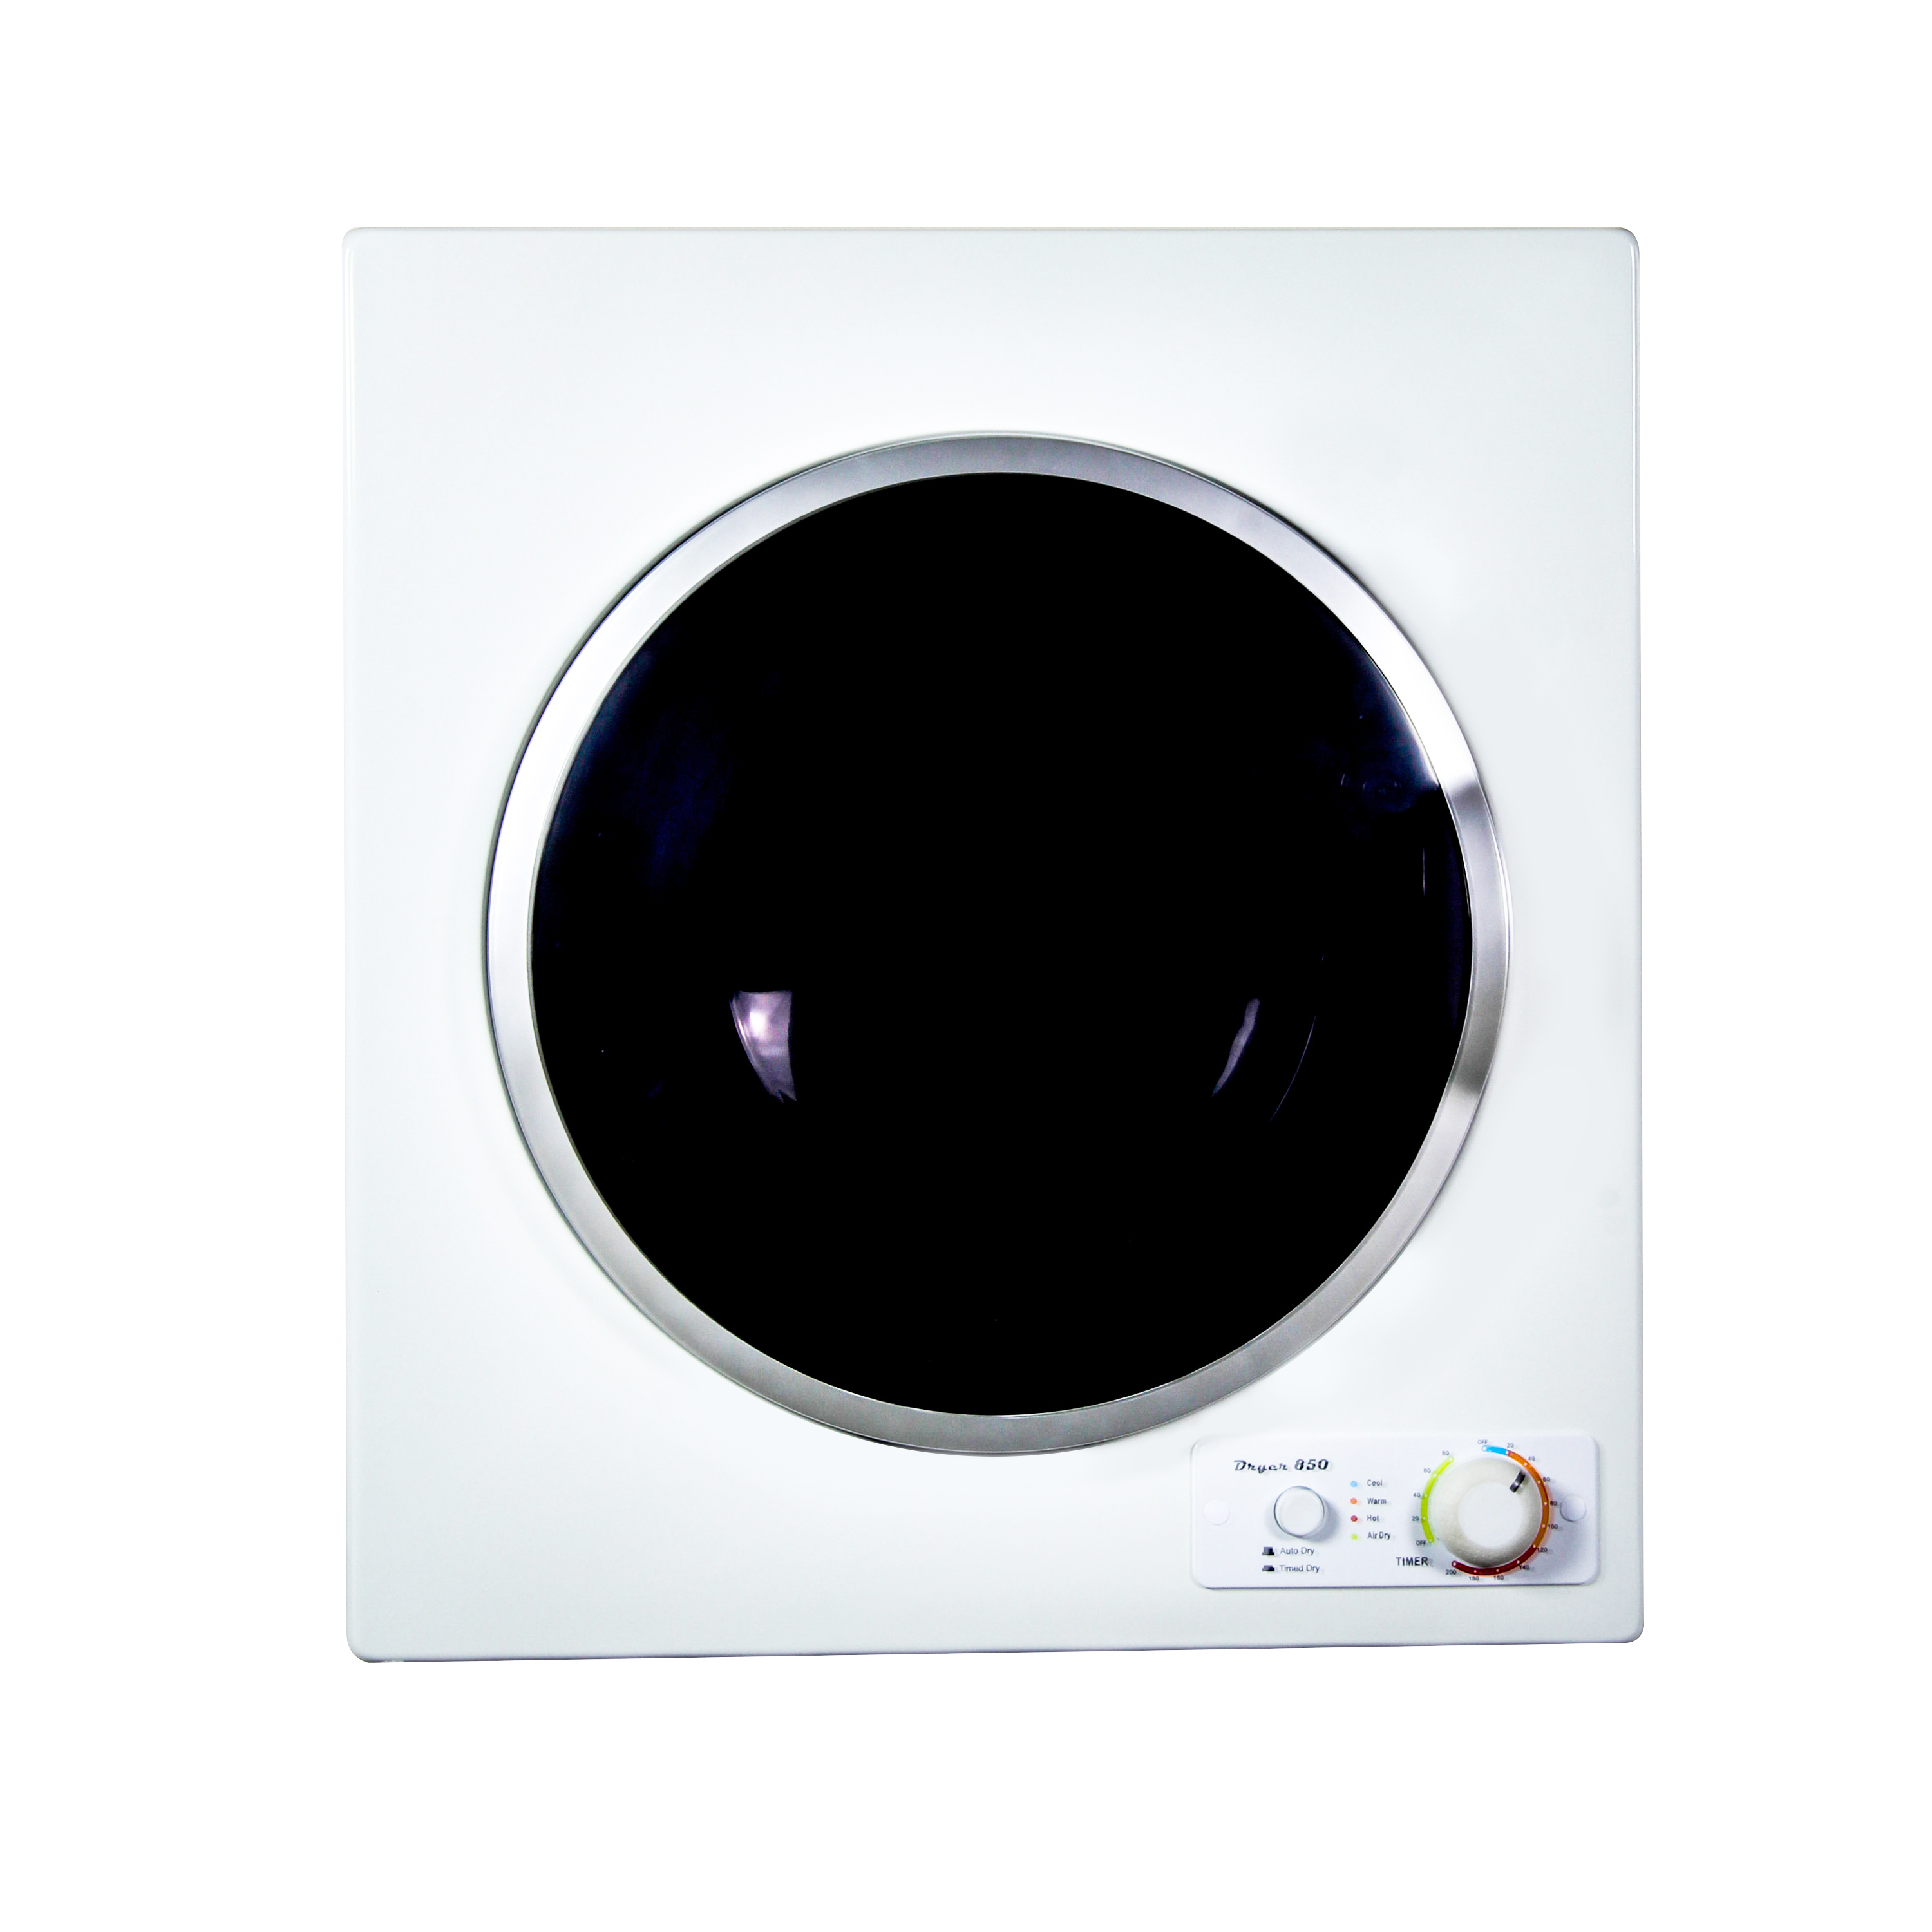 Deco Compact Dryer DD 850